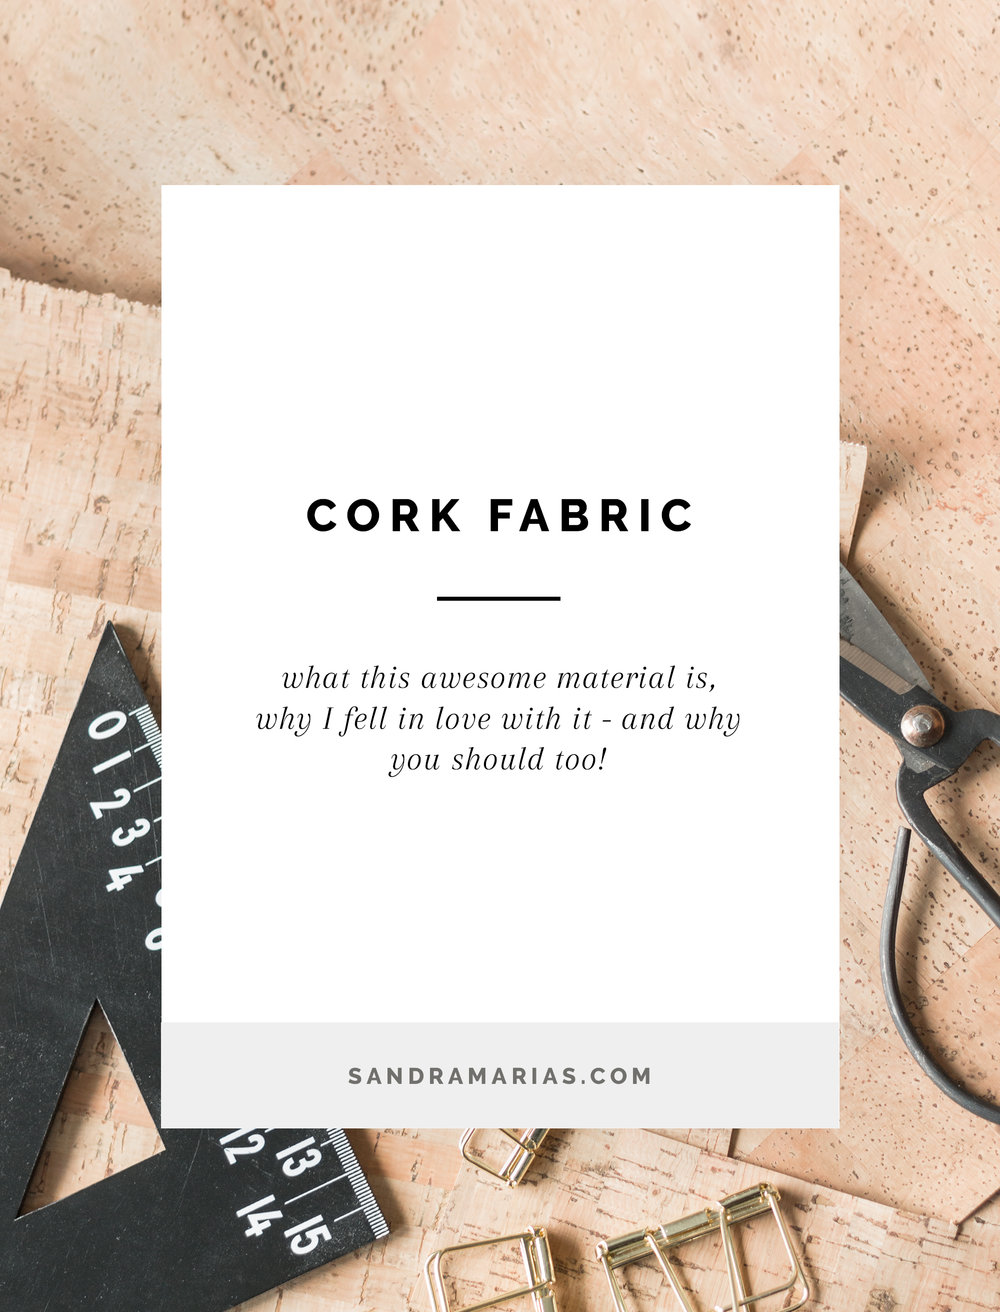 What is Cork Fabric? Why I Fell in Love With it - and Why You Should too! | By Sandramaria | Sandramarias.com